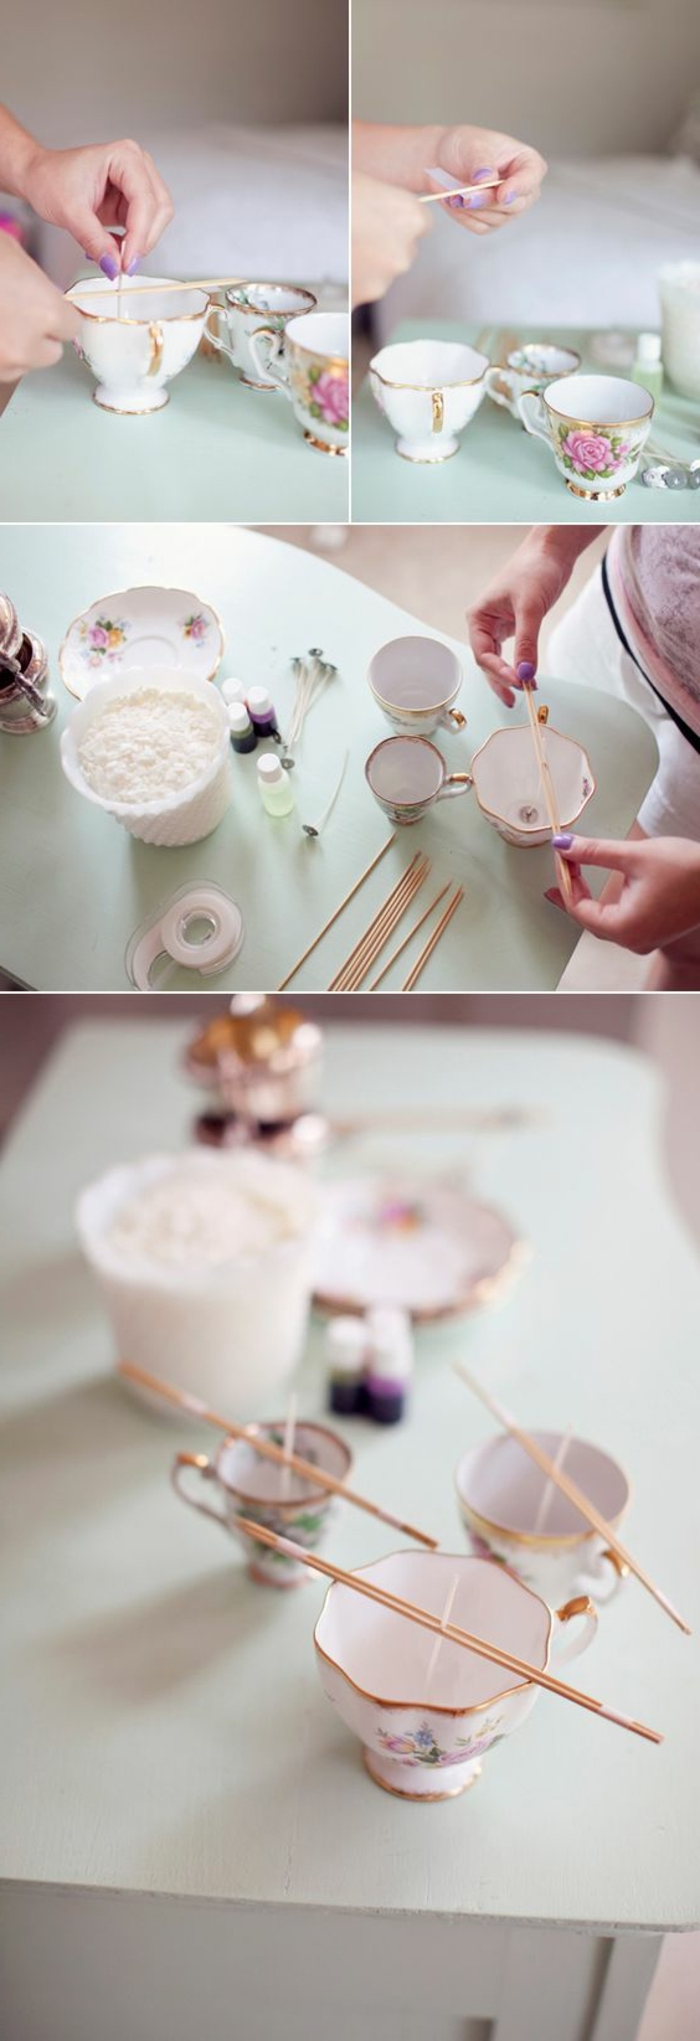 step by step, diy tutorial, how to make candles, vintage teacups, filled with candle wax